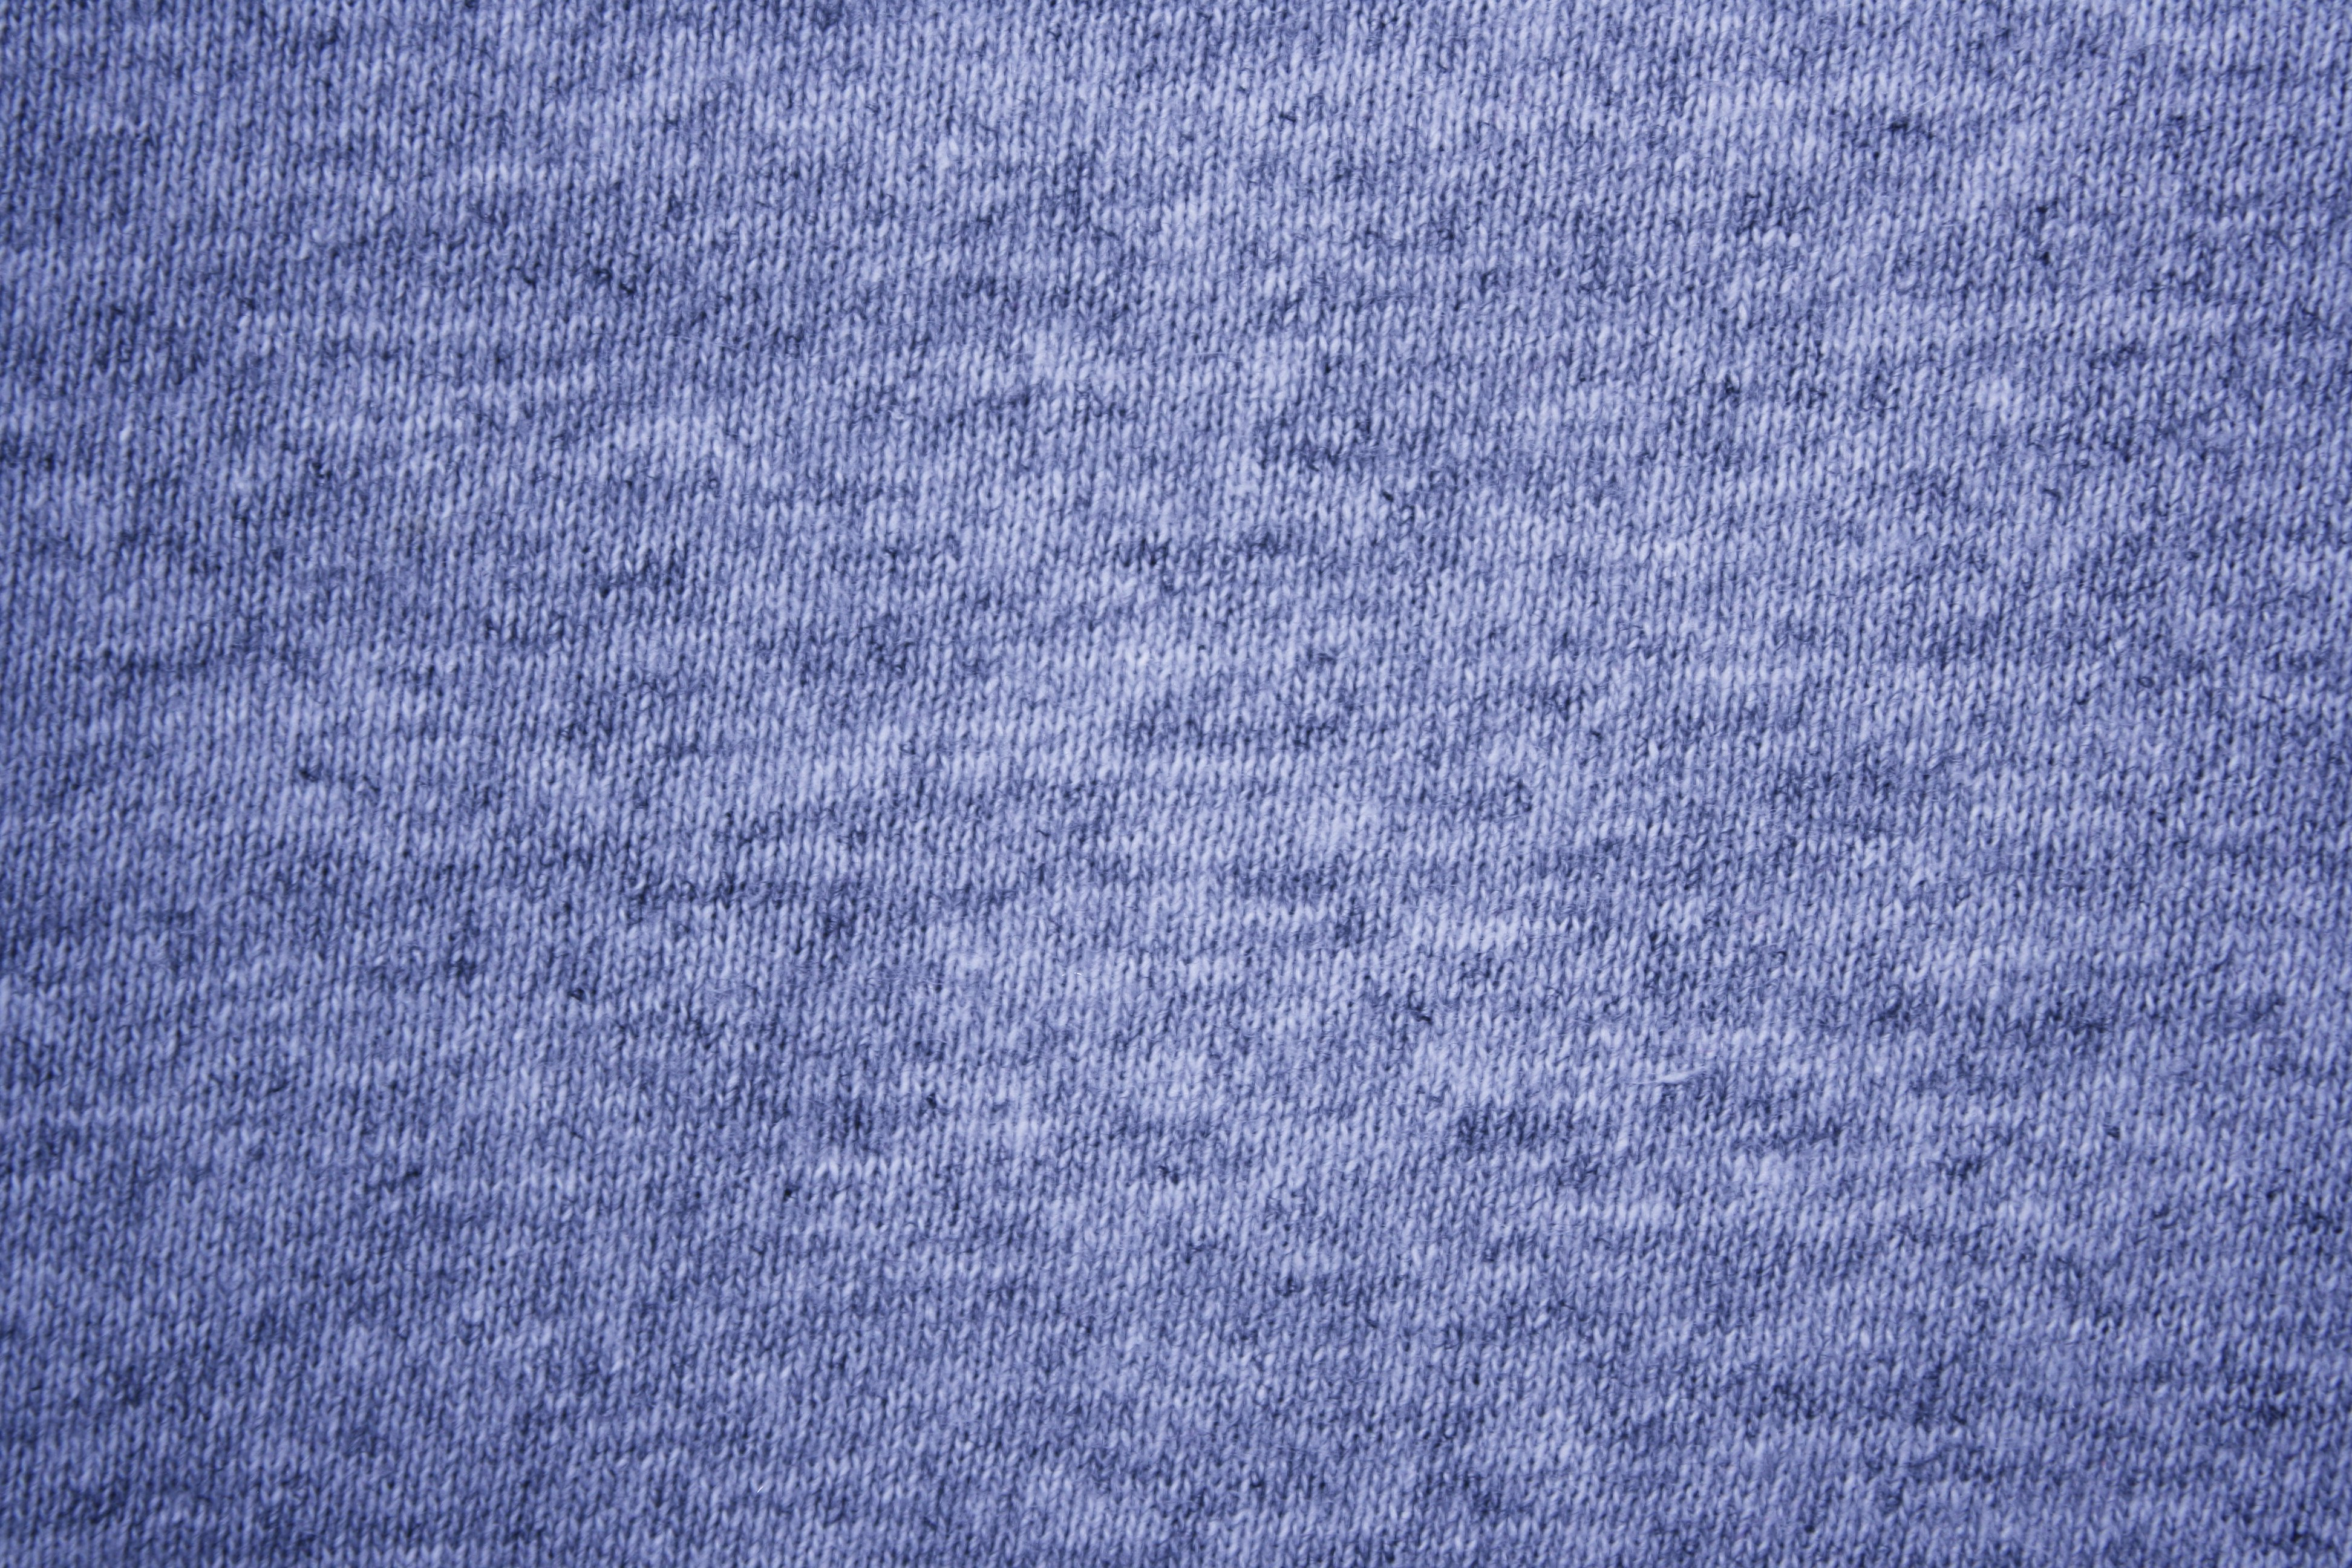 Blue Heather Knit T Shirt Fabric Texture Picture Free